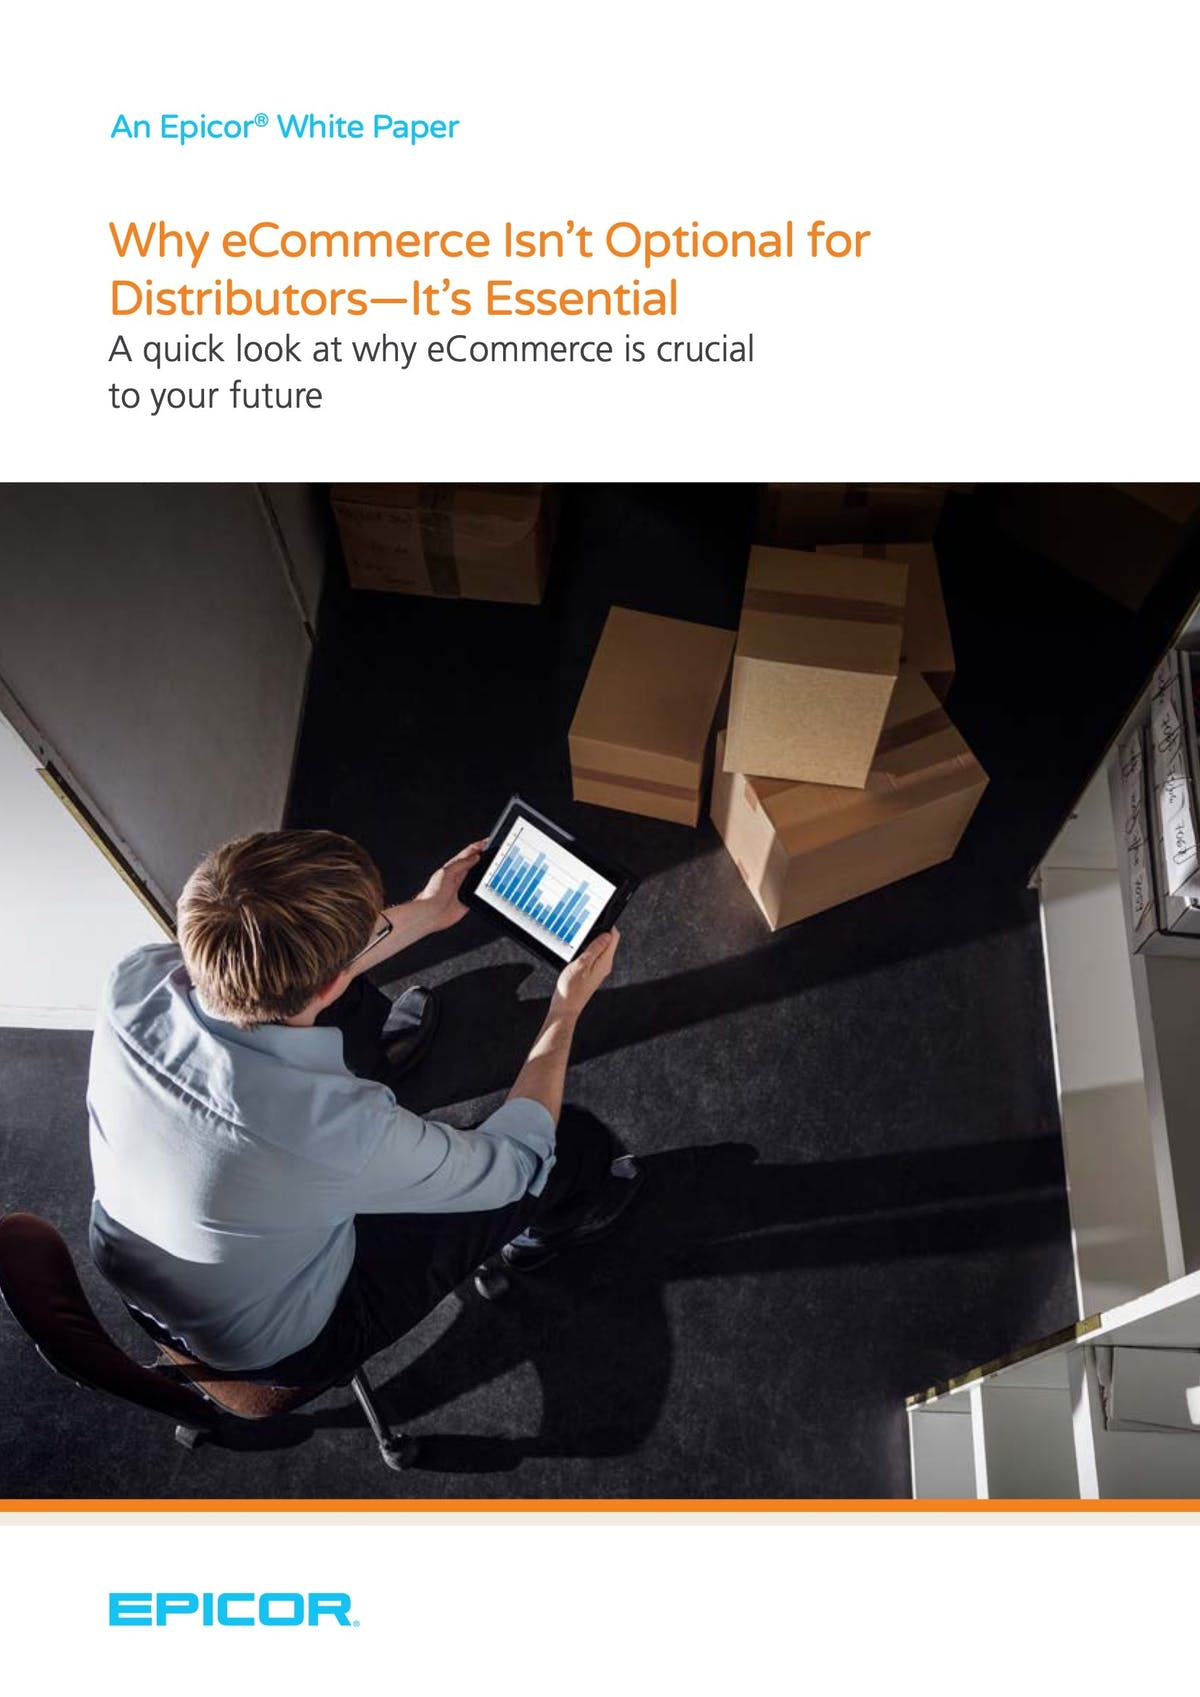 Epicor Eclipse White Paper - Why eCommerce Isn't Optional for Distributors—It's Essential